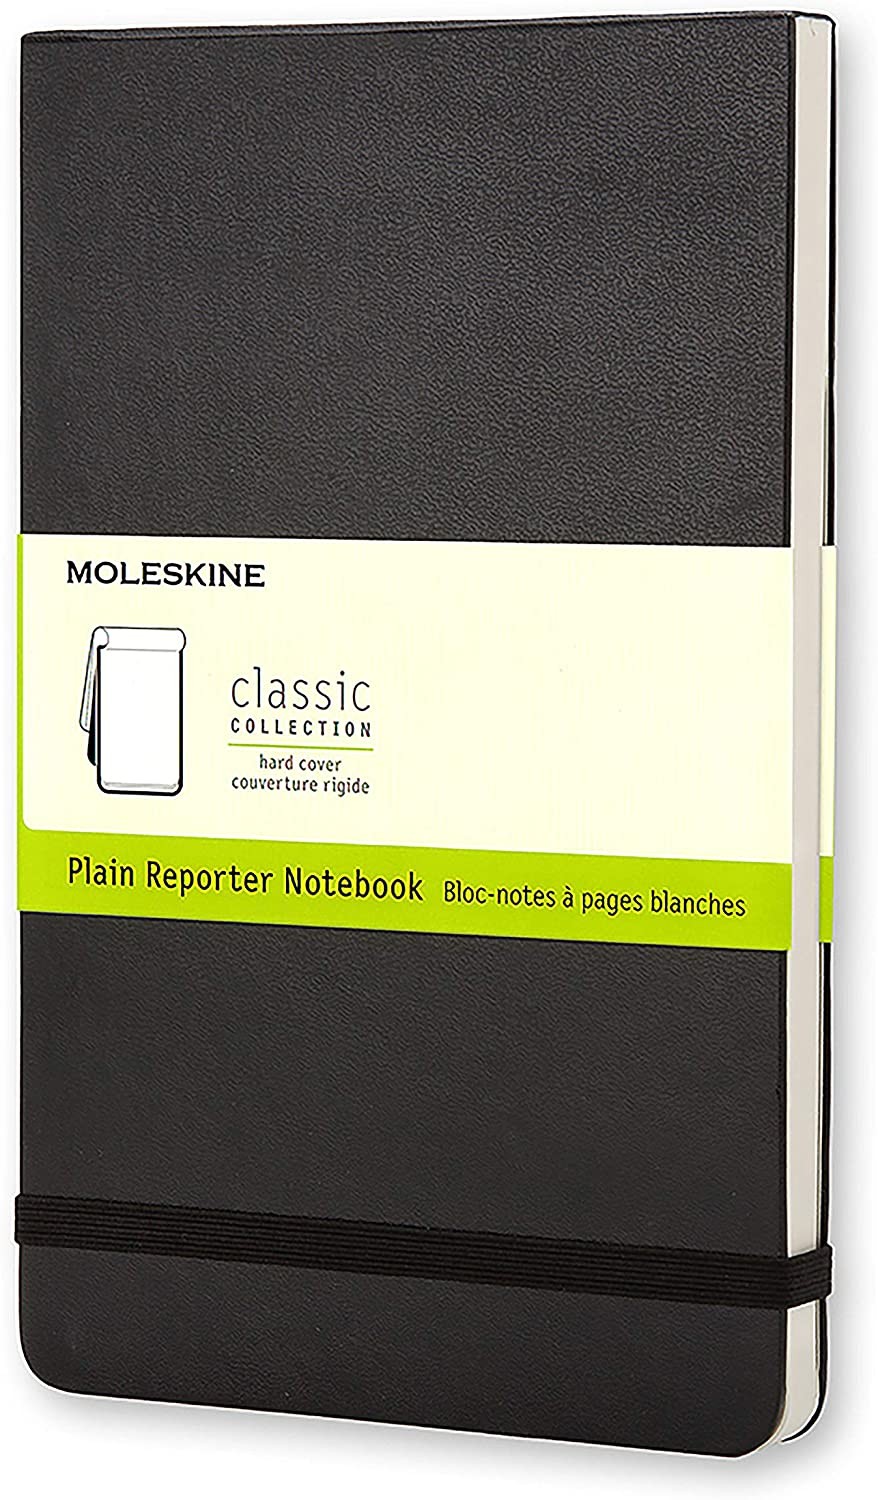 Moleskine Plain Reporter Large Notebook - Hard Cover